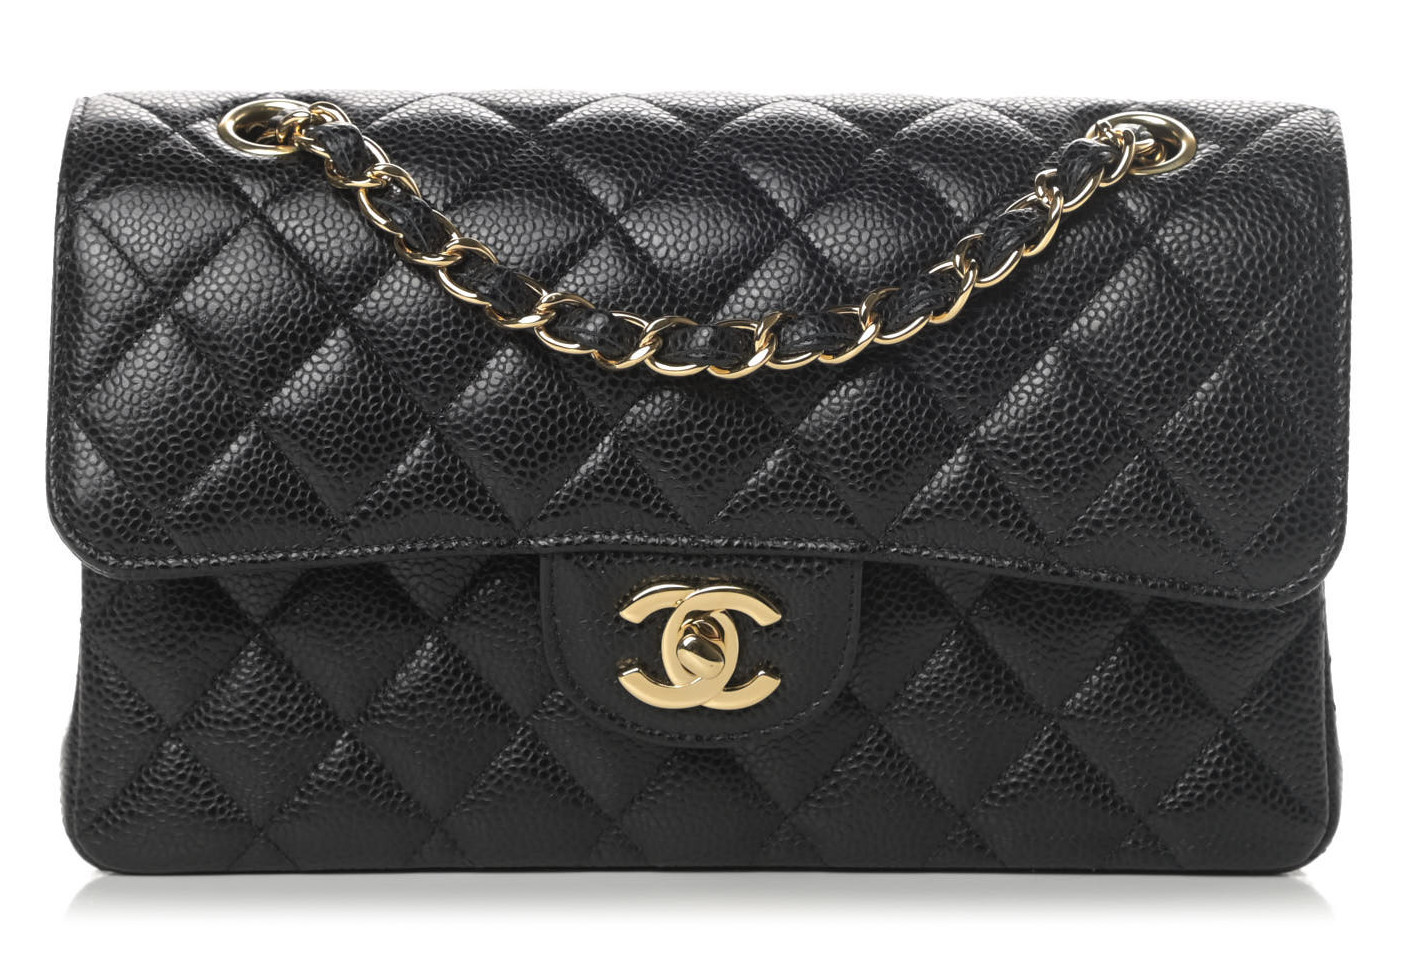 Chanel Small Classic Flap Black Caviar Leather